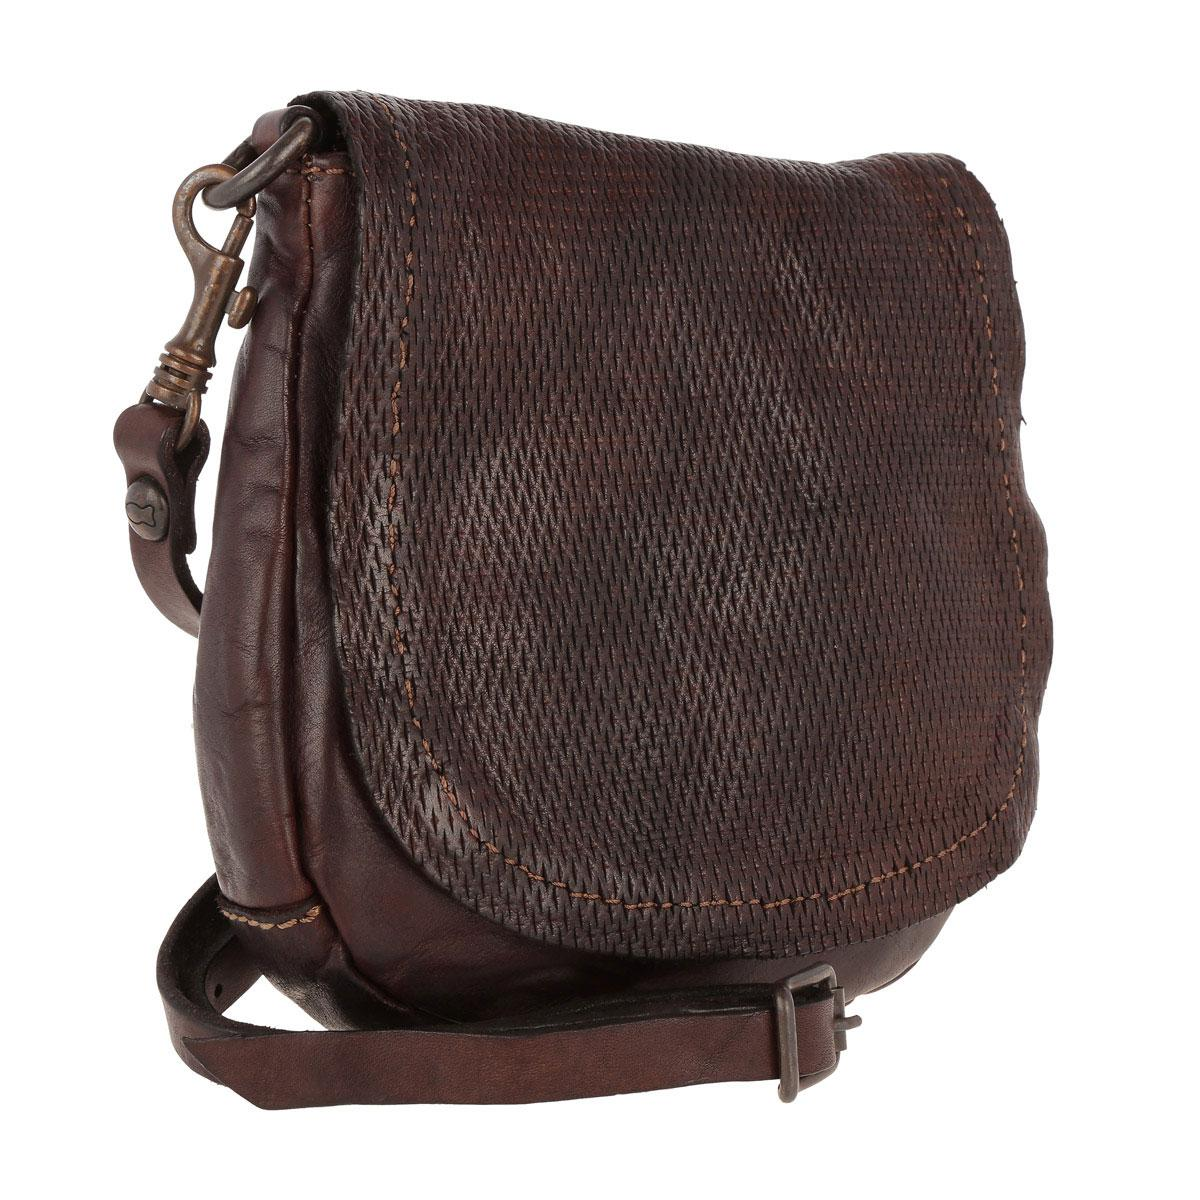 Campomaggi Tracollina Crossbody Bag Moro in Brown - Lyst be176bbc31c8c